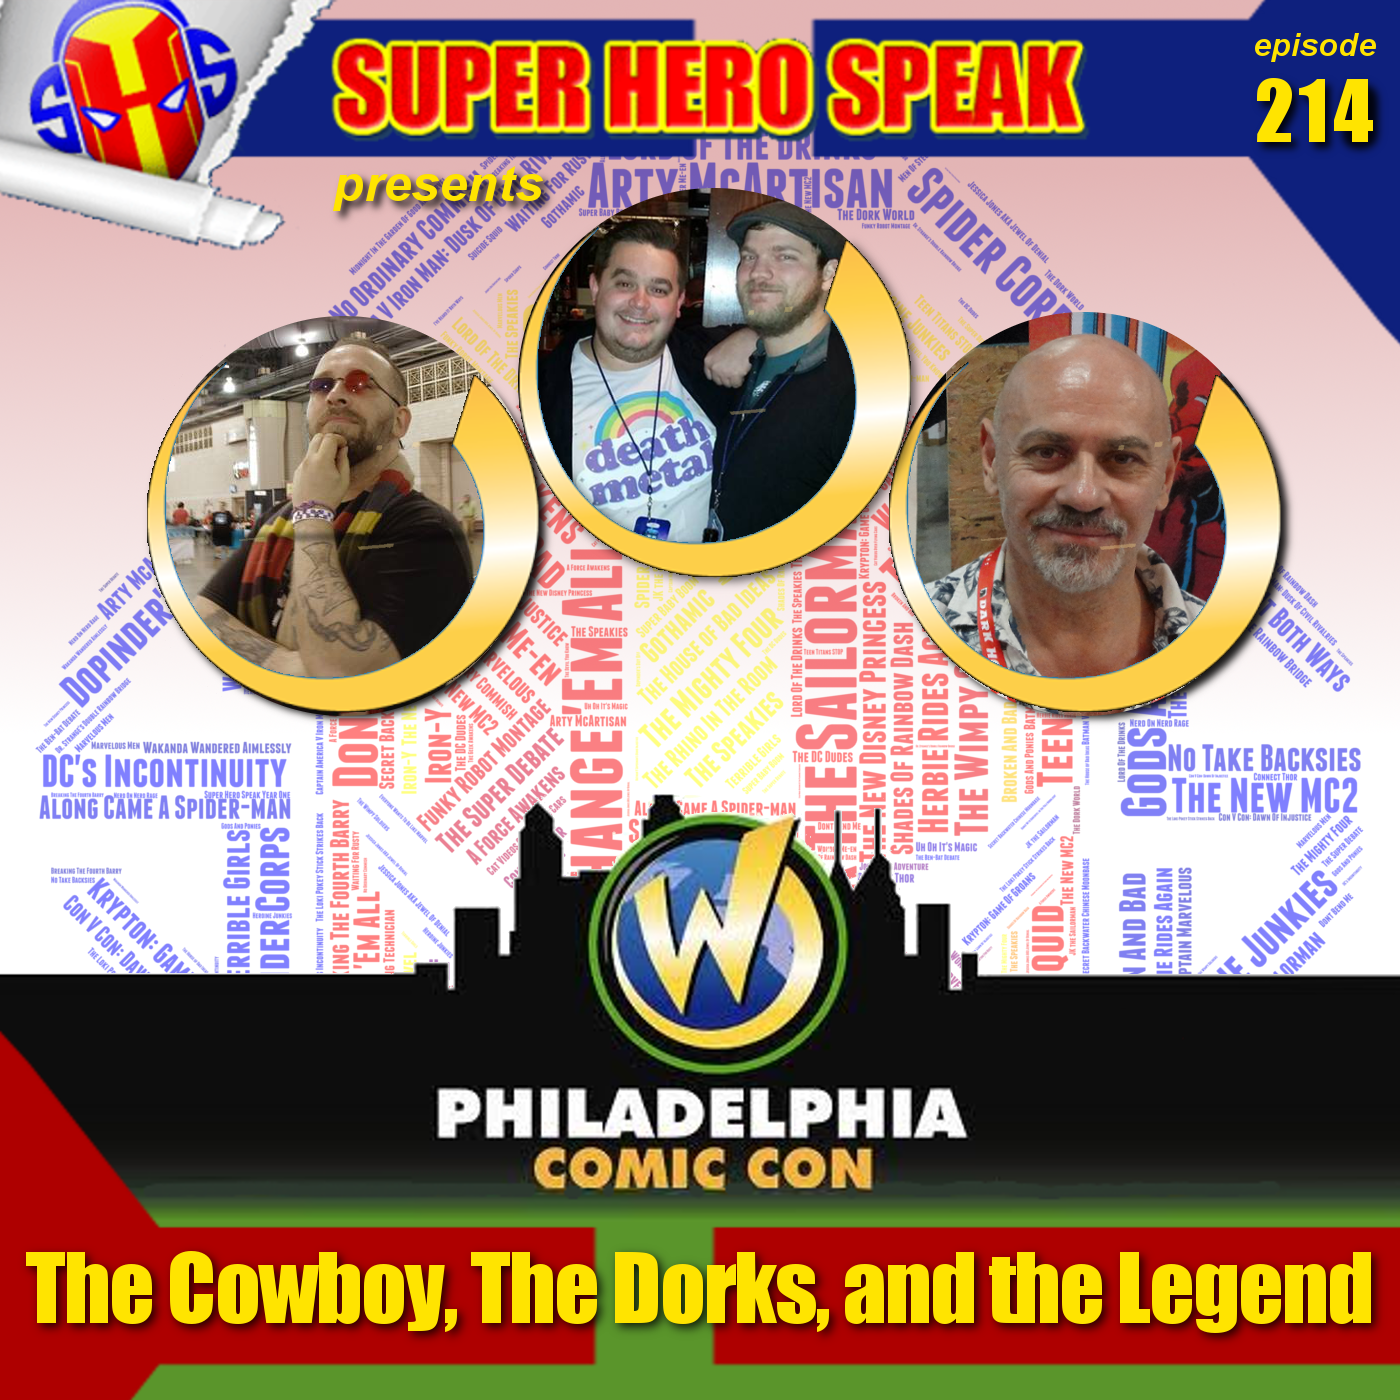 #214: The Cowboy, The Dorks, and the Legend